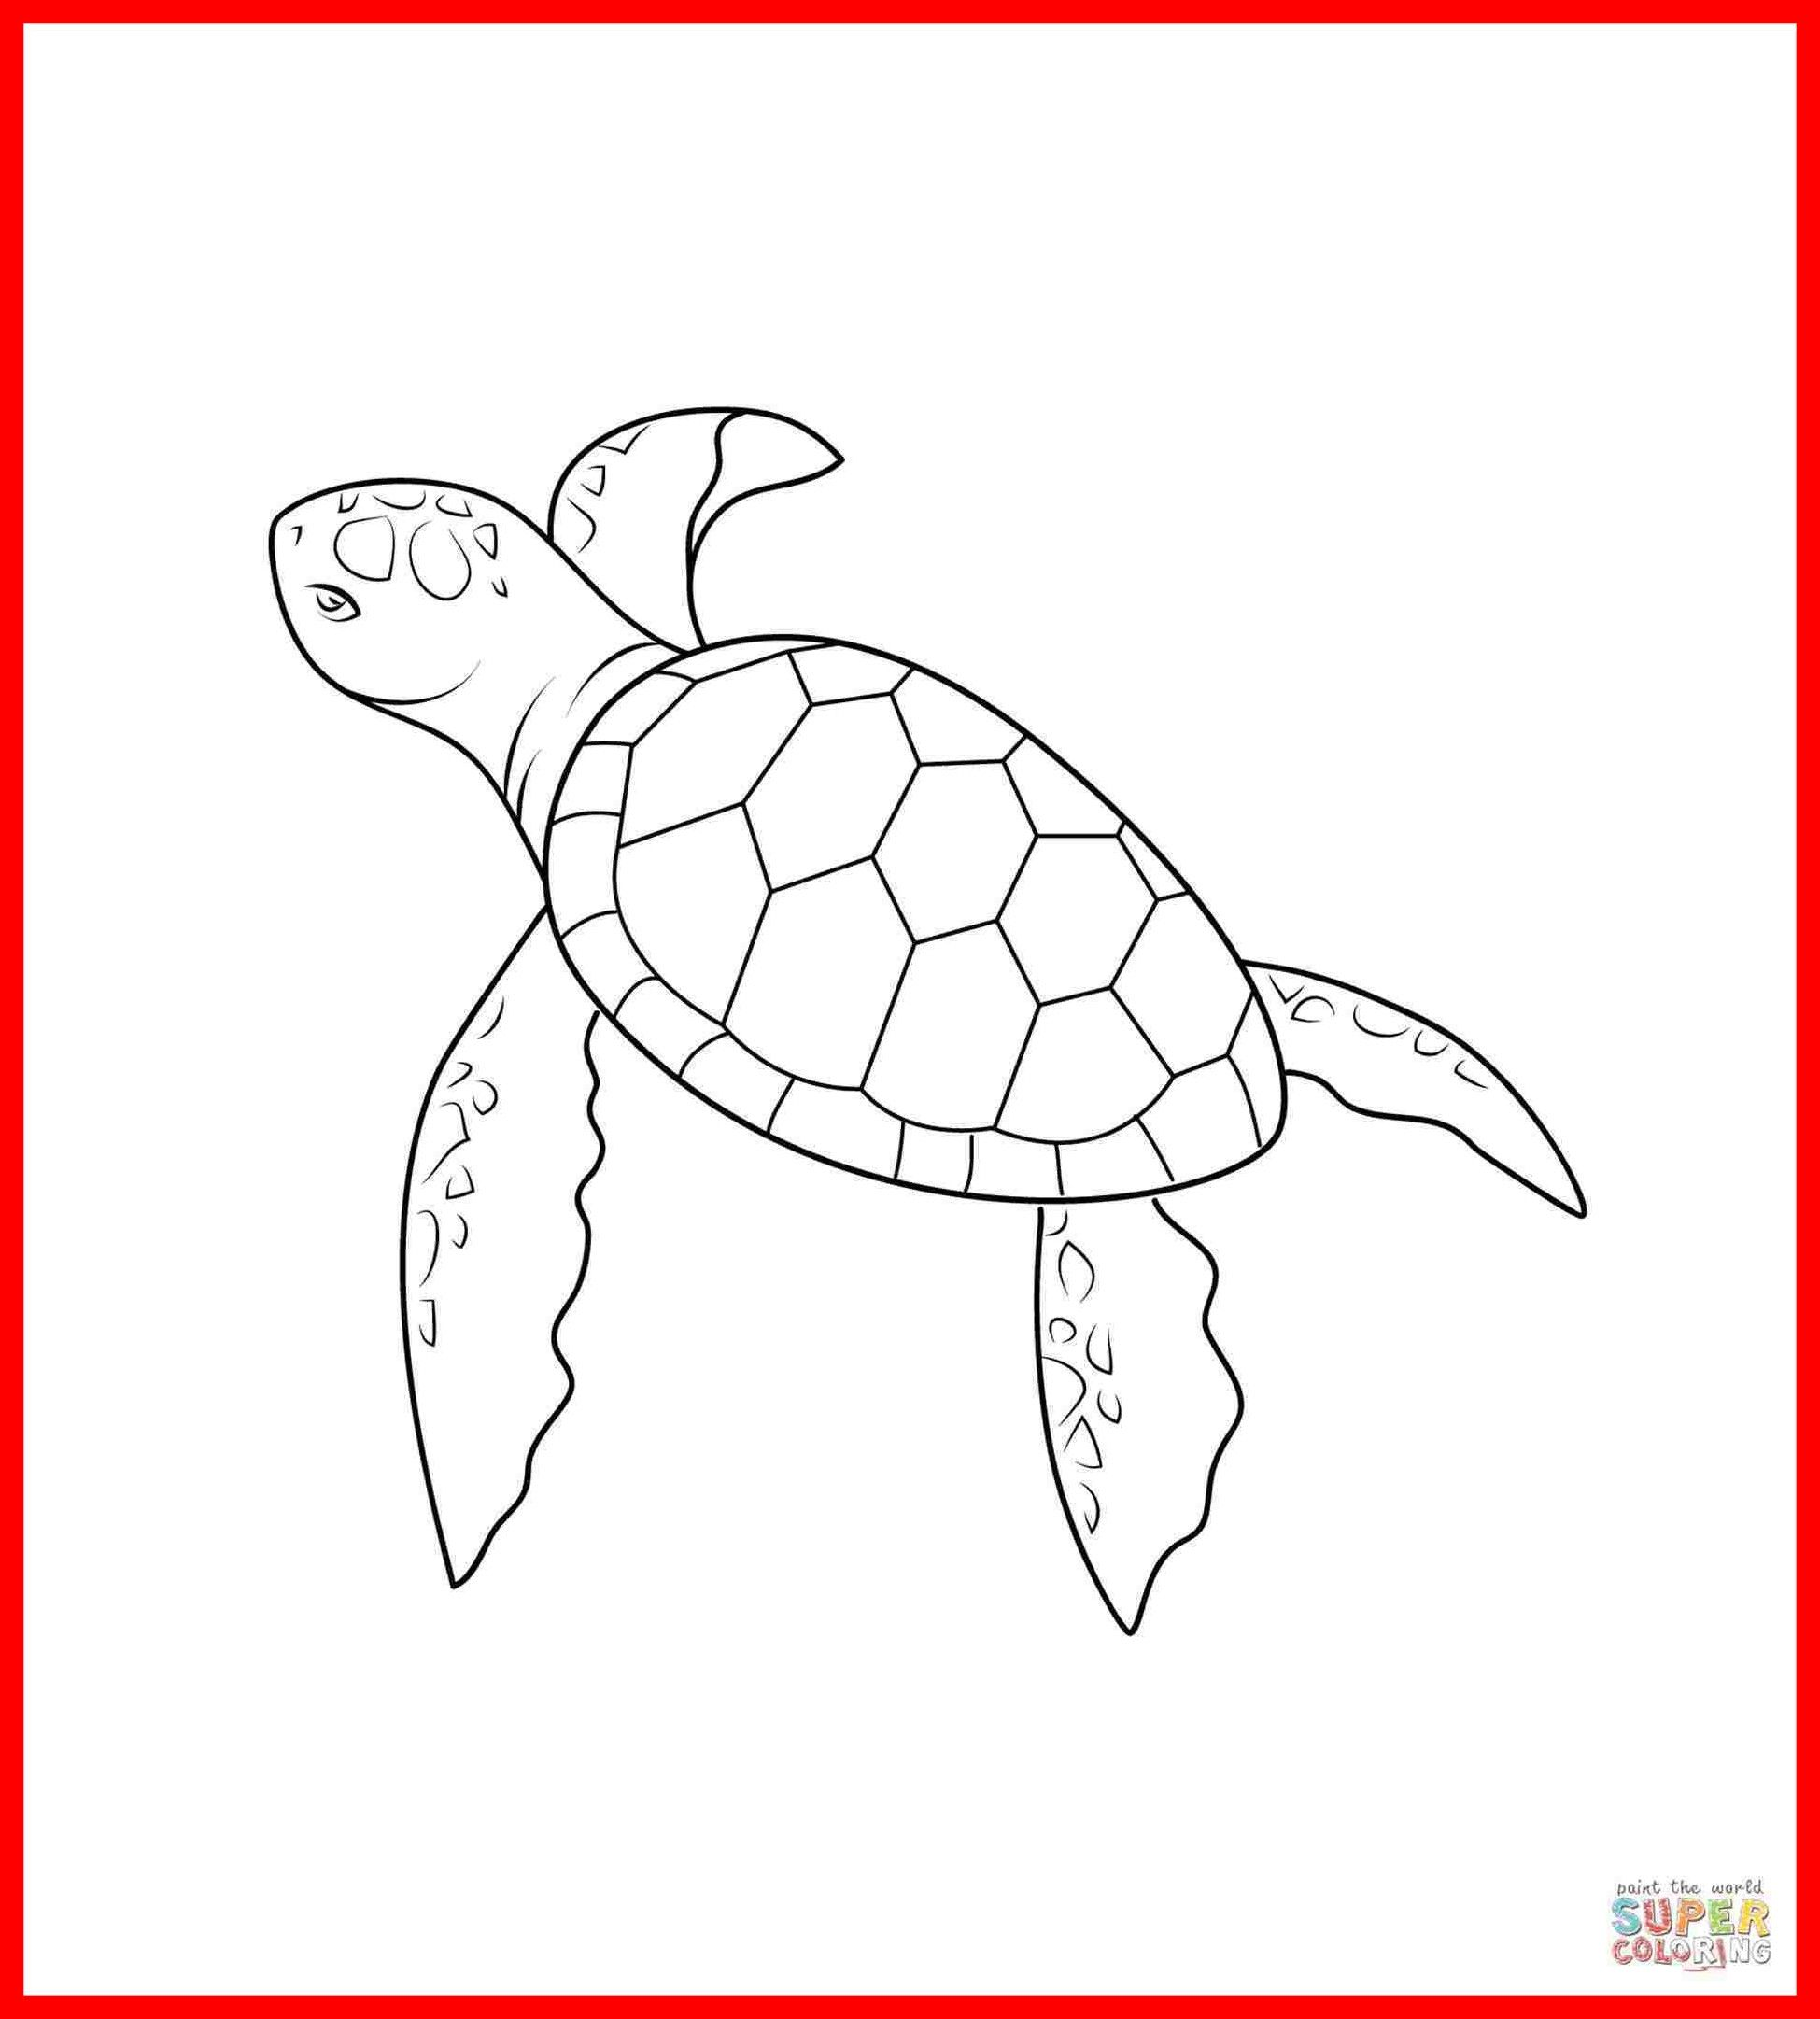 Cute Cartoon Turtle Wallpapers Top Free Cute Cartoon Turtle